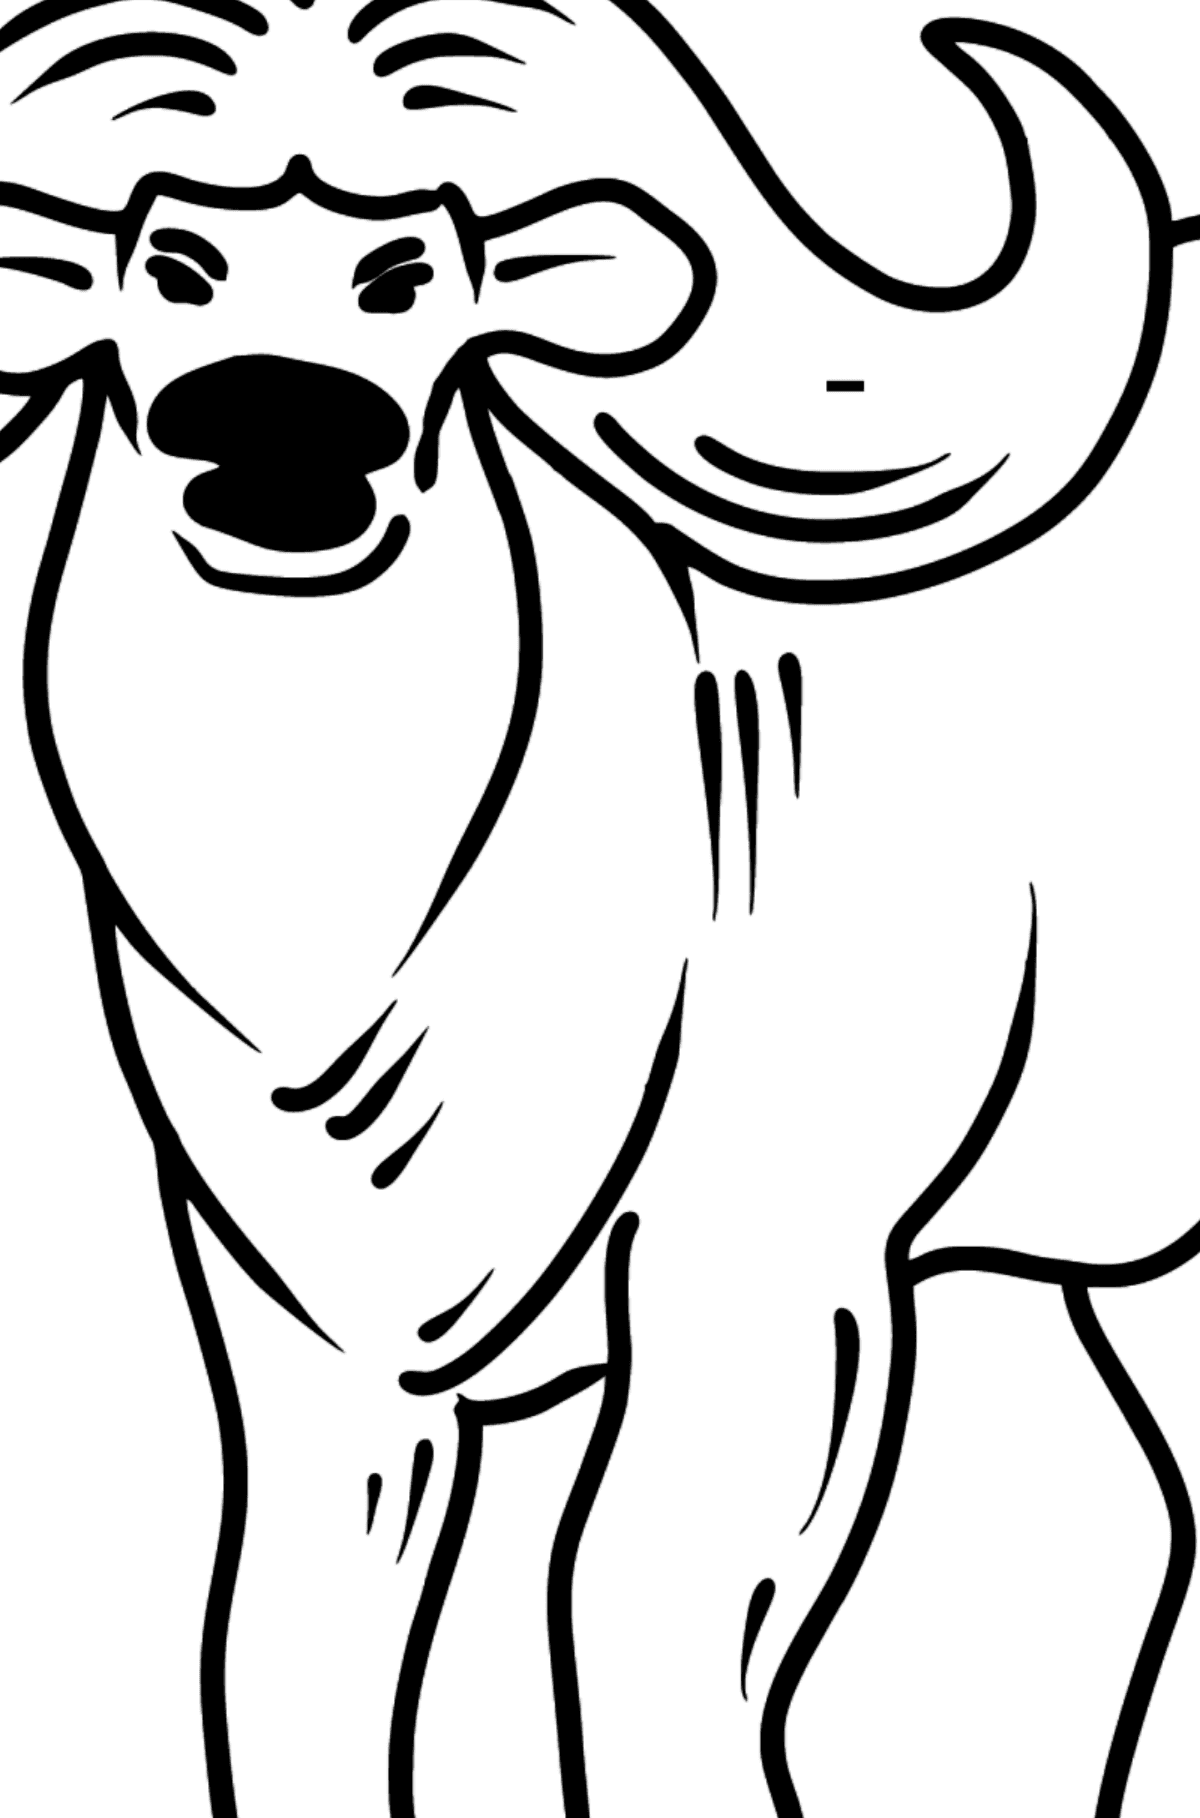 Buffalo coloring page - Coloring by Symbols and Geometric Shapes for Kids